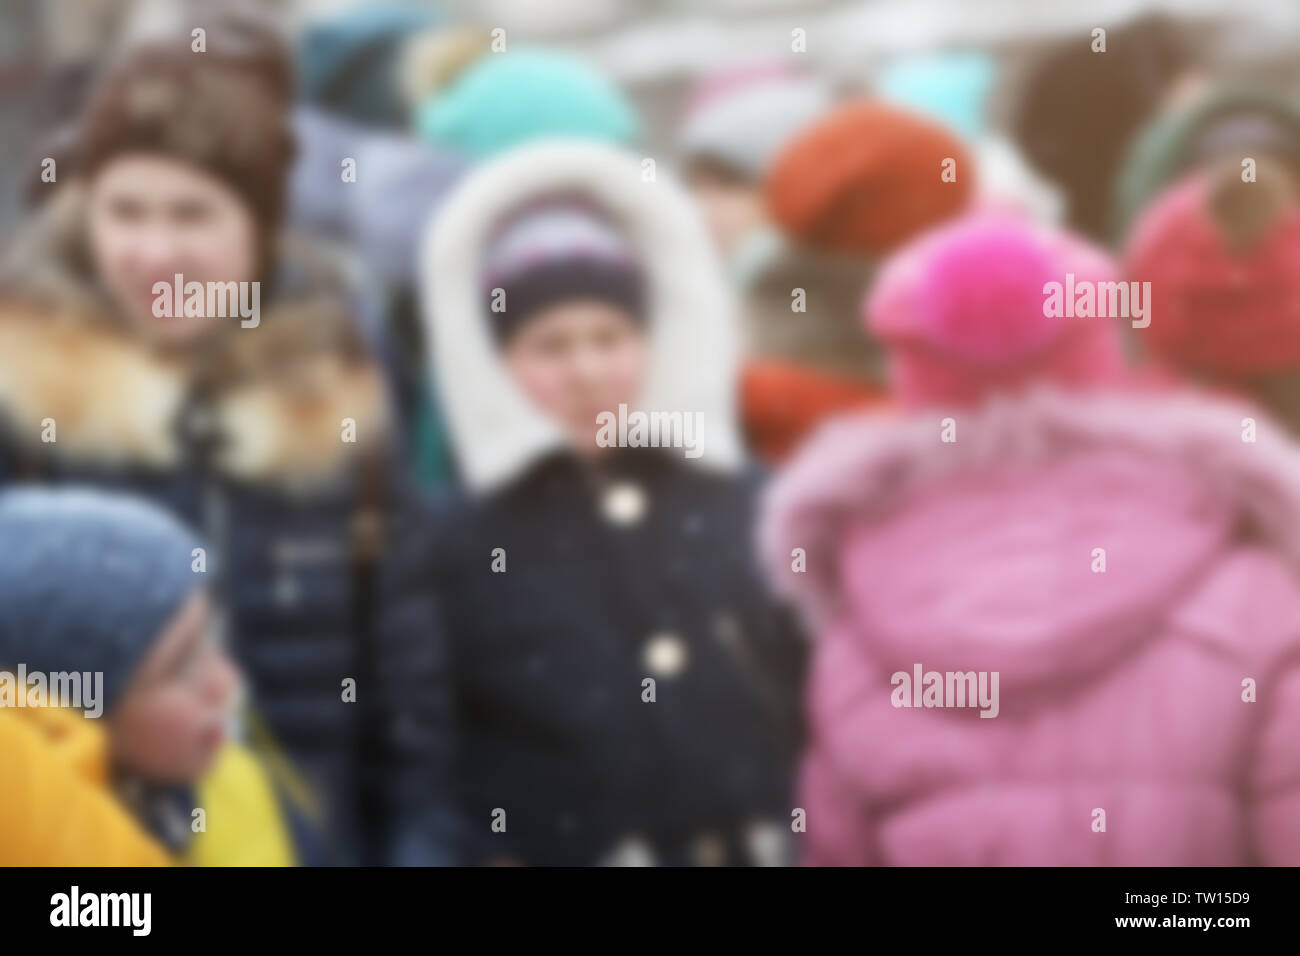 Crowd of people in warm clothes outdoors on winter day, blurred view - Stock Image